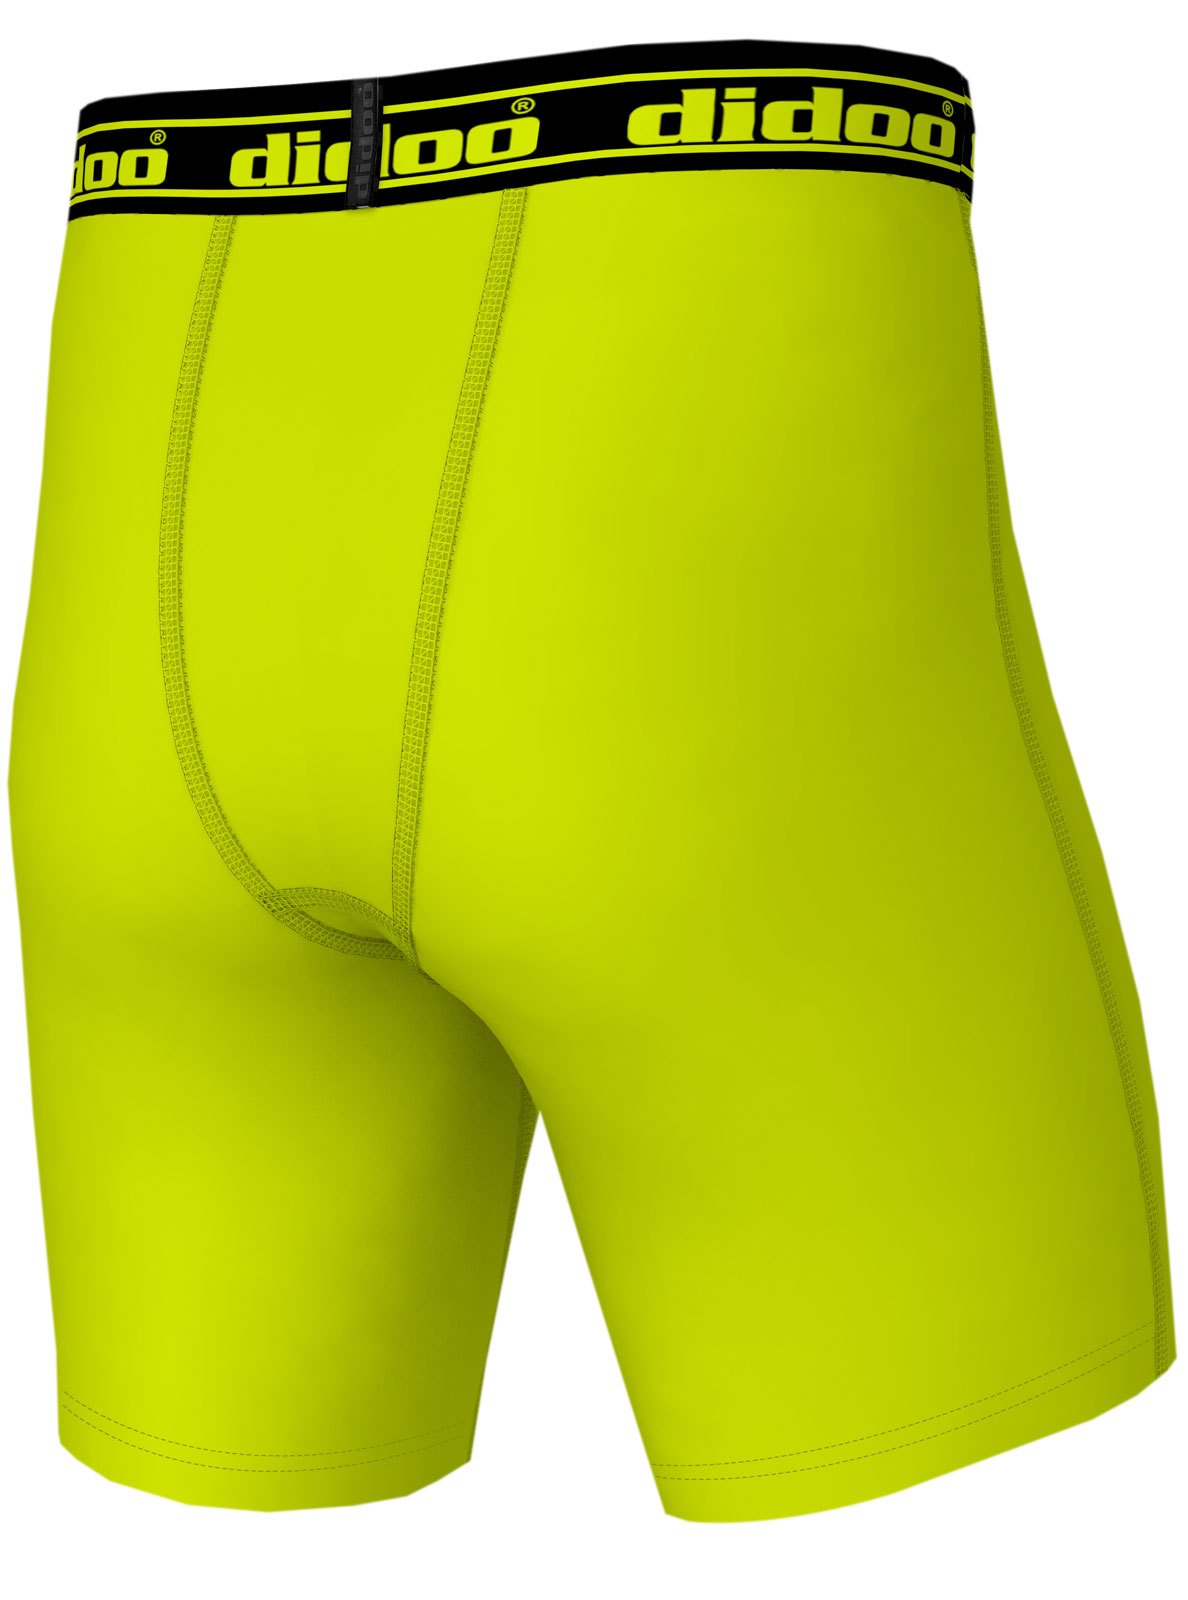 DiDOO Men's Compression Base Layer Shorts